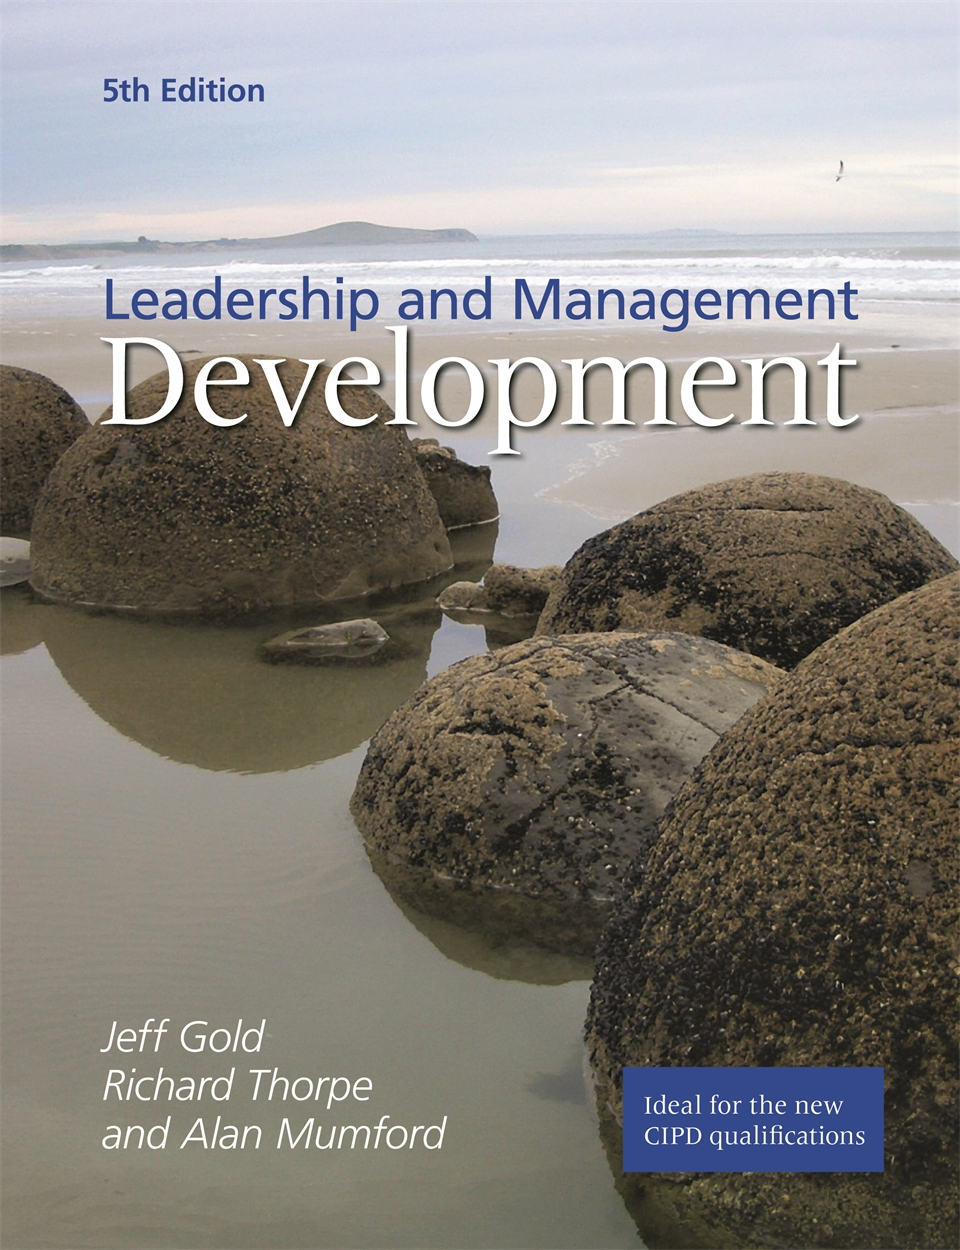 Leadership and Management Development (9781843982449)